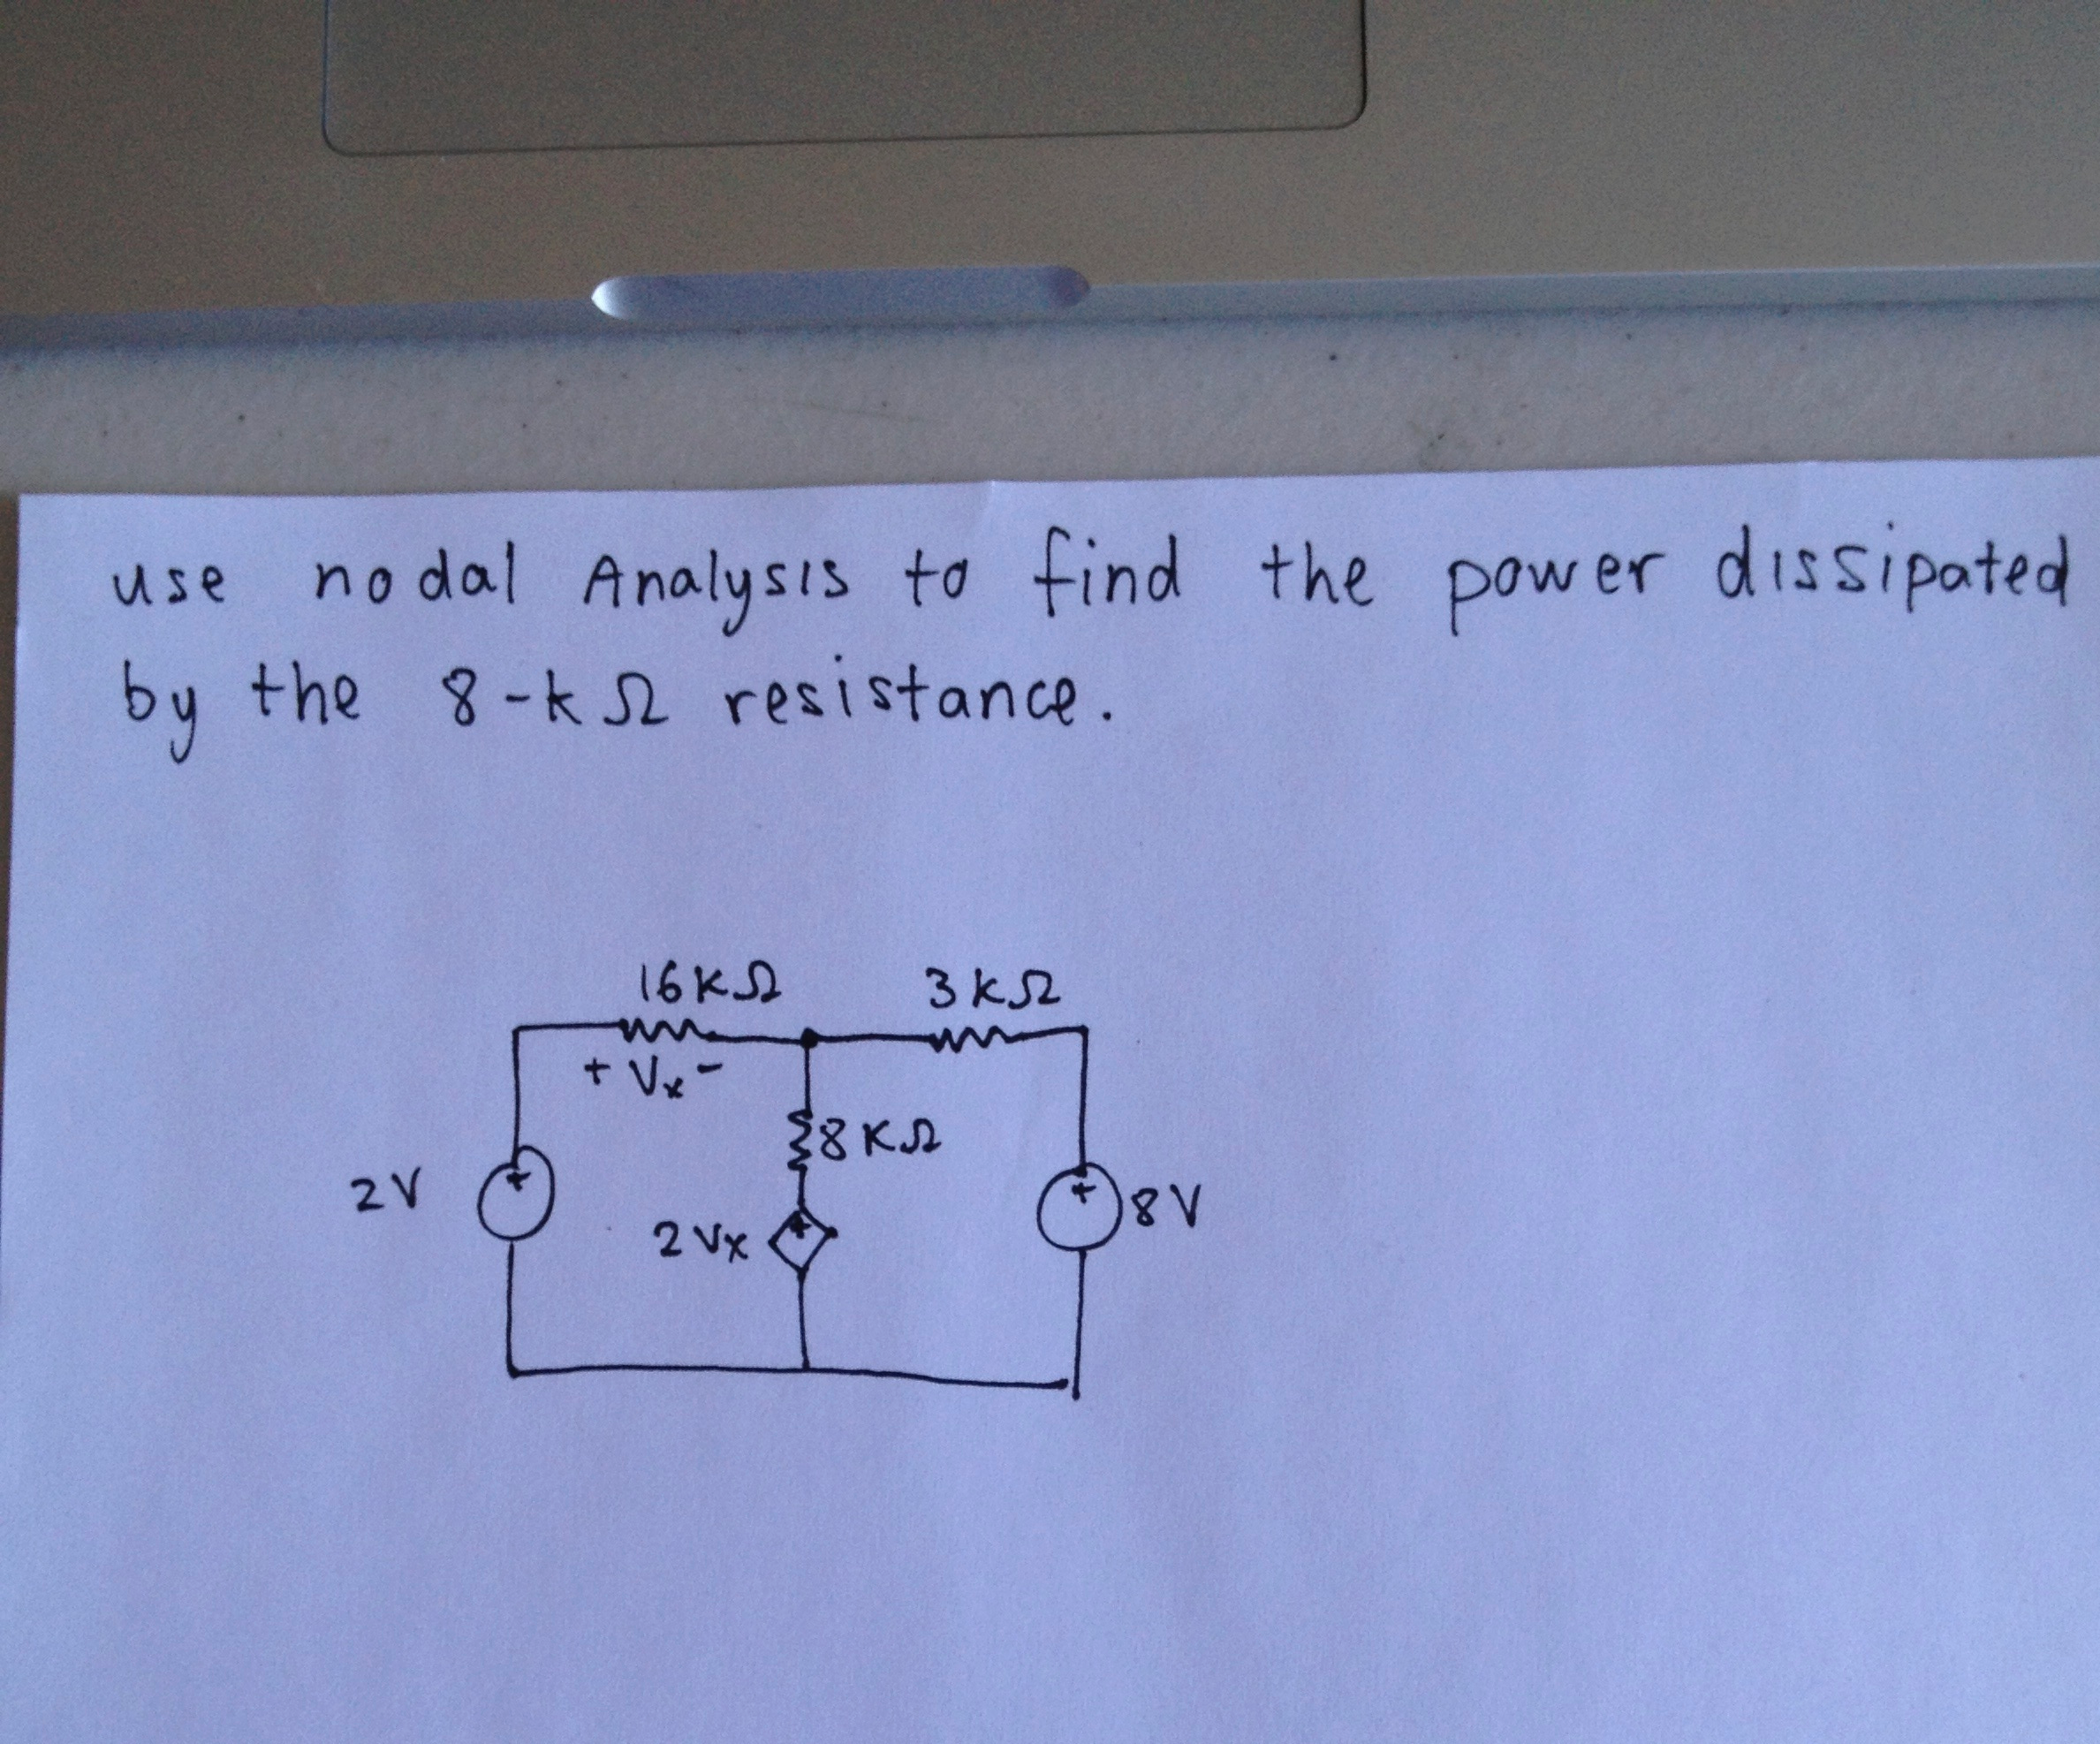 use nodal Analysis to find the power dissipoted by